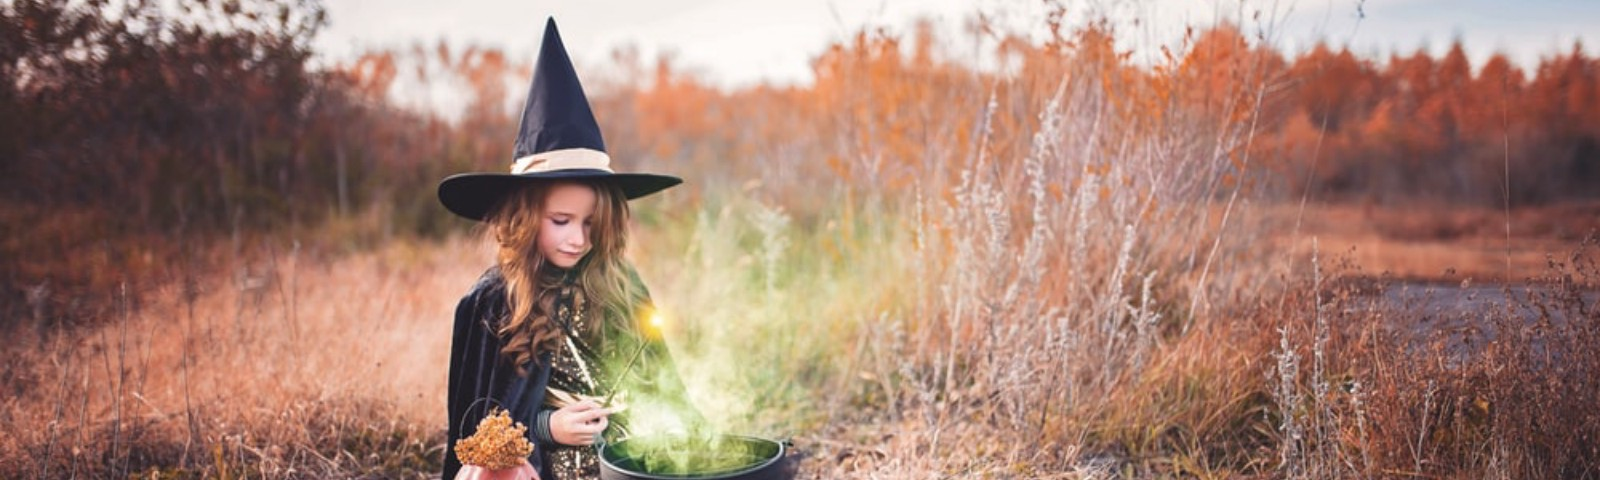 A young girl in a witch costume, in a field, accompanied by a pumpkin, tends a cauldron made from an old flowerpot.